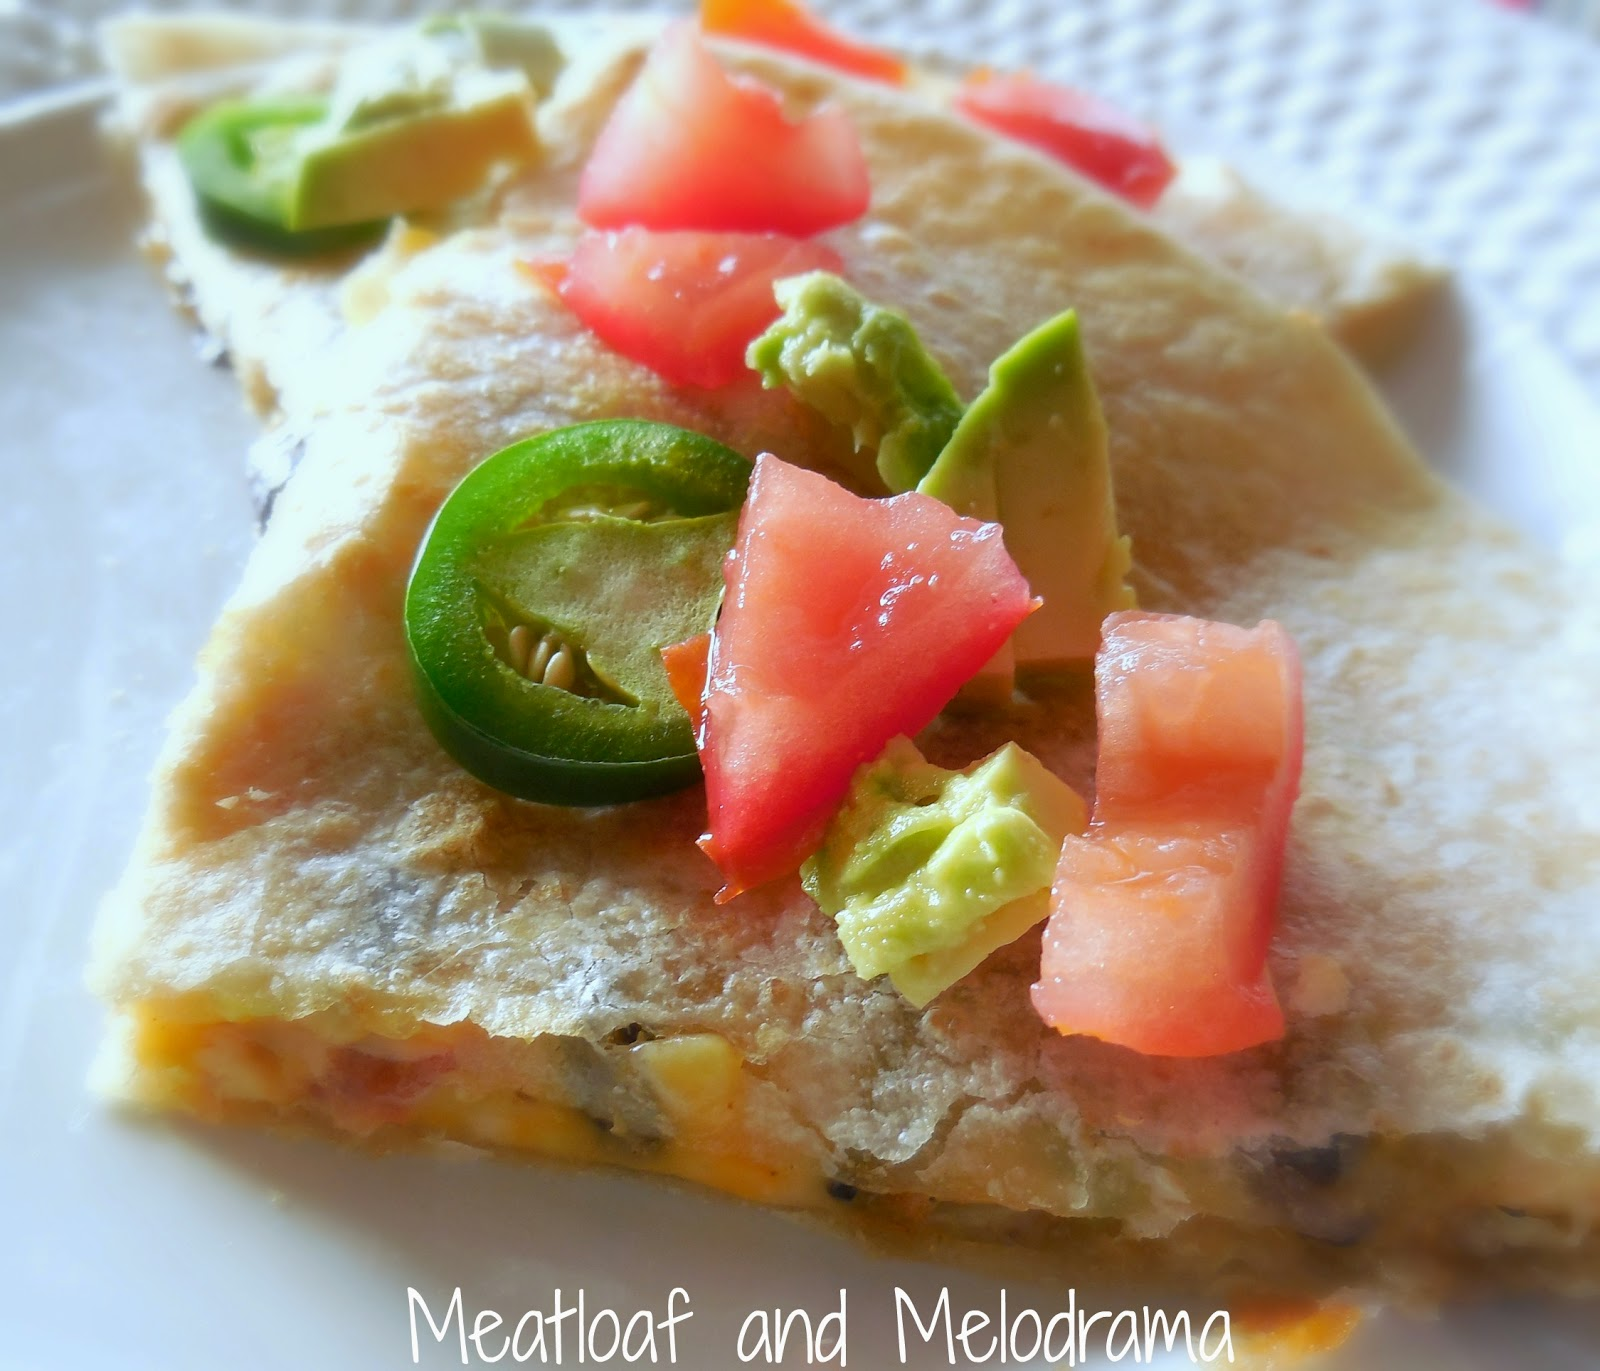 chicken and black bean quesadillas with jalapeno peppers, avocado and tomatoes